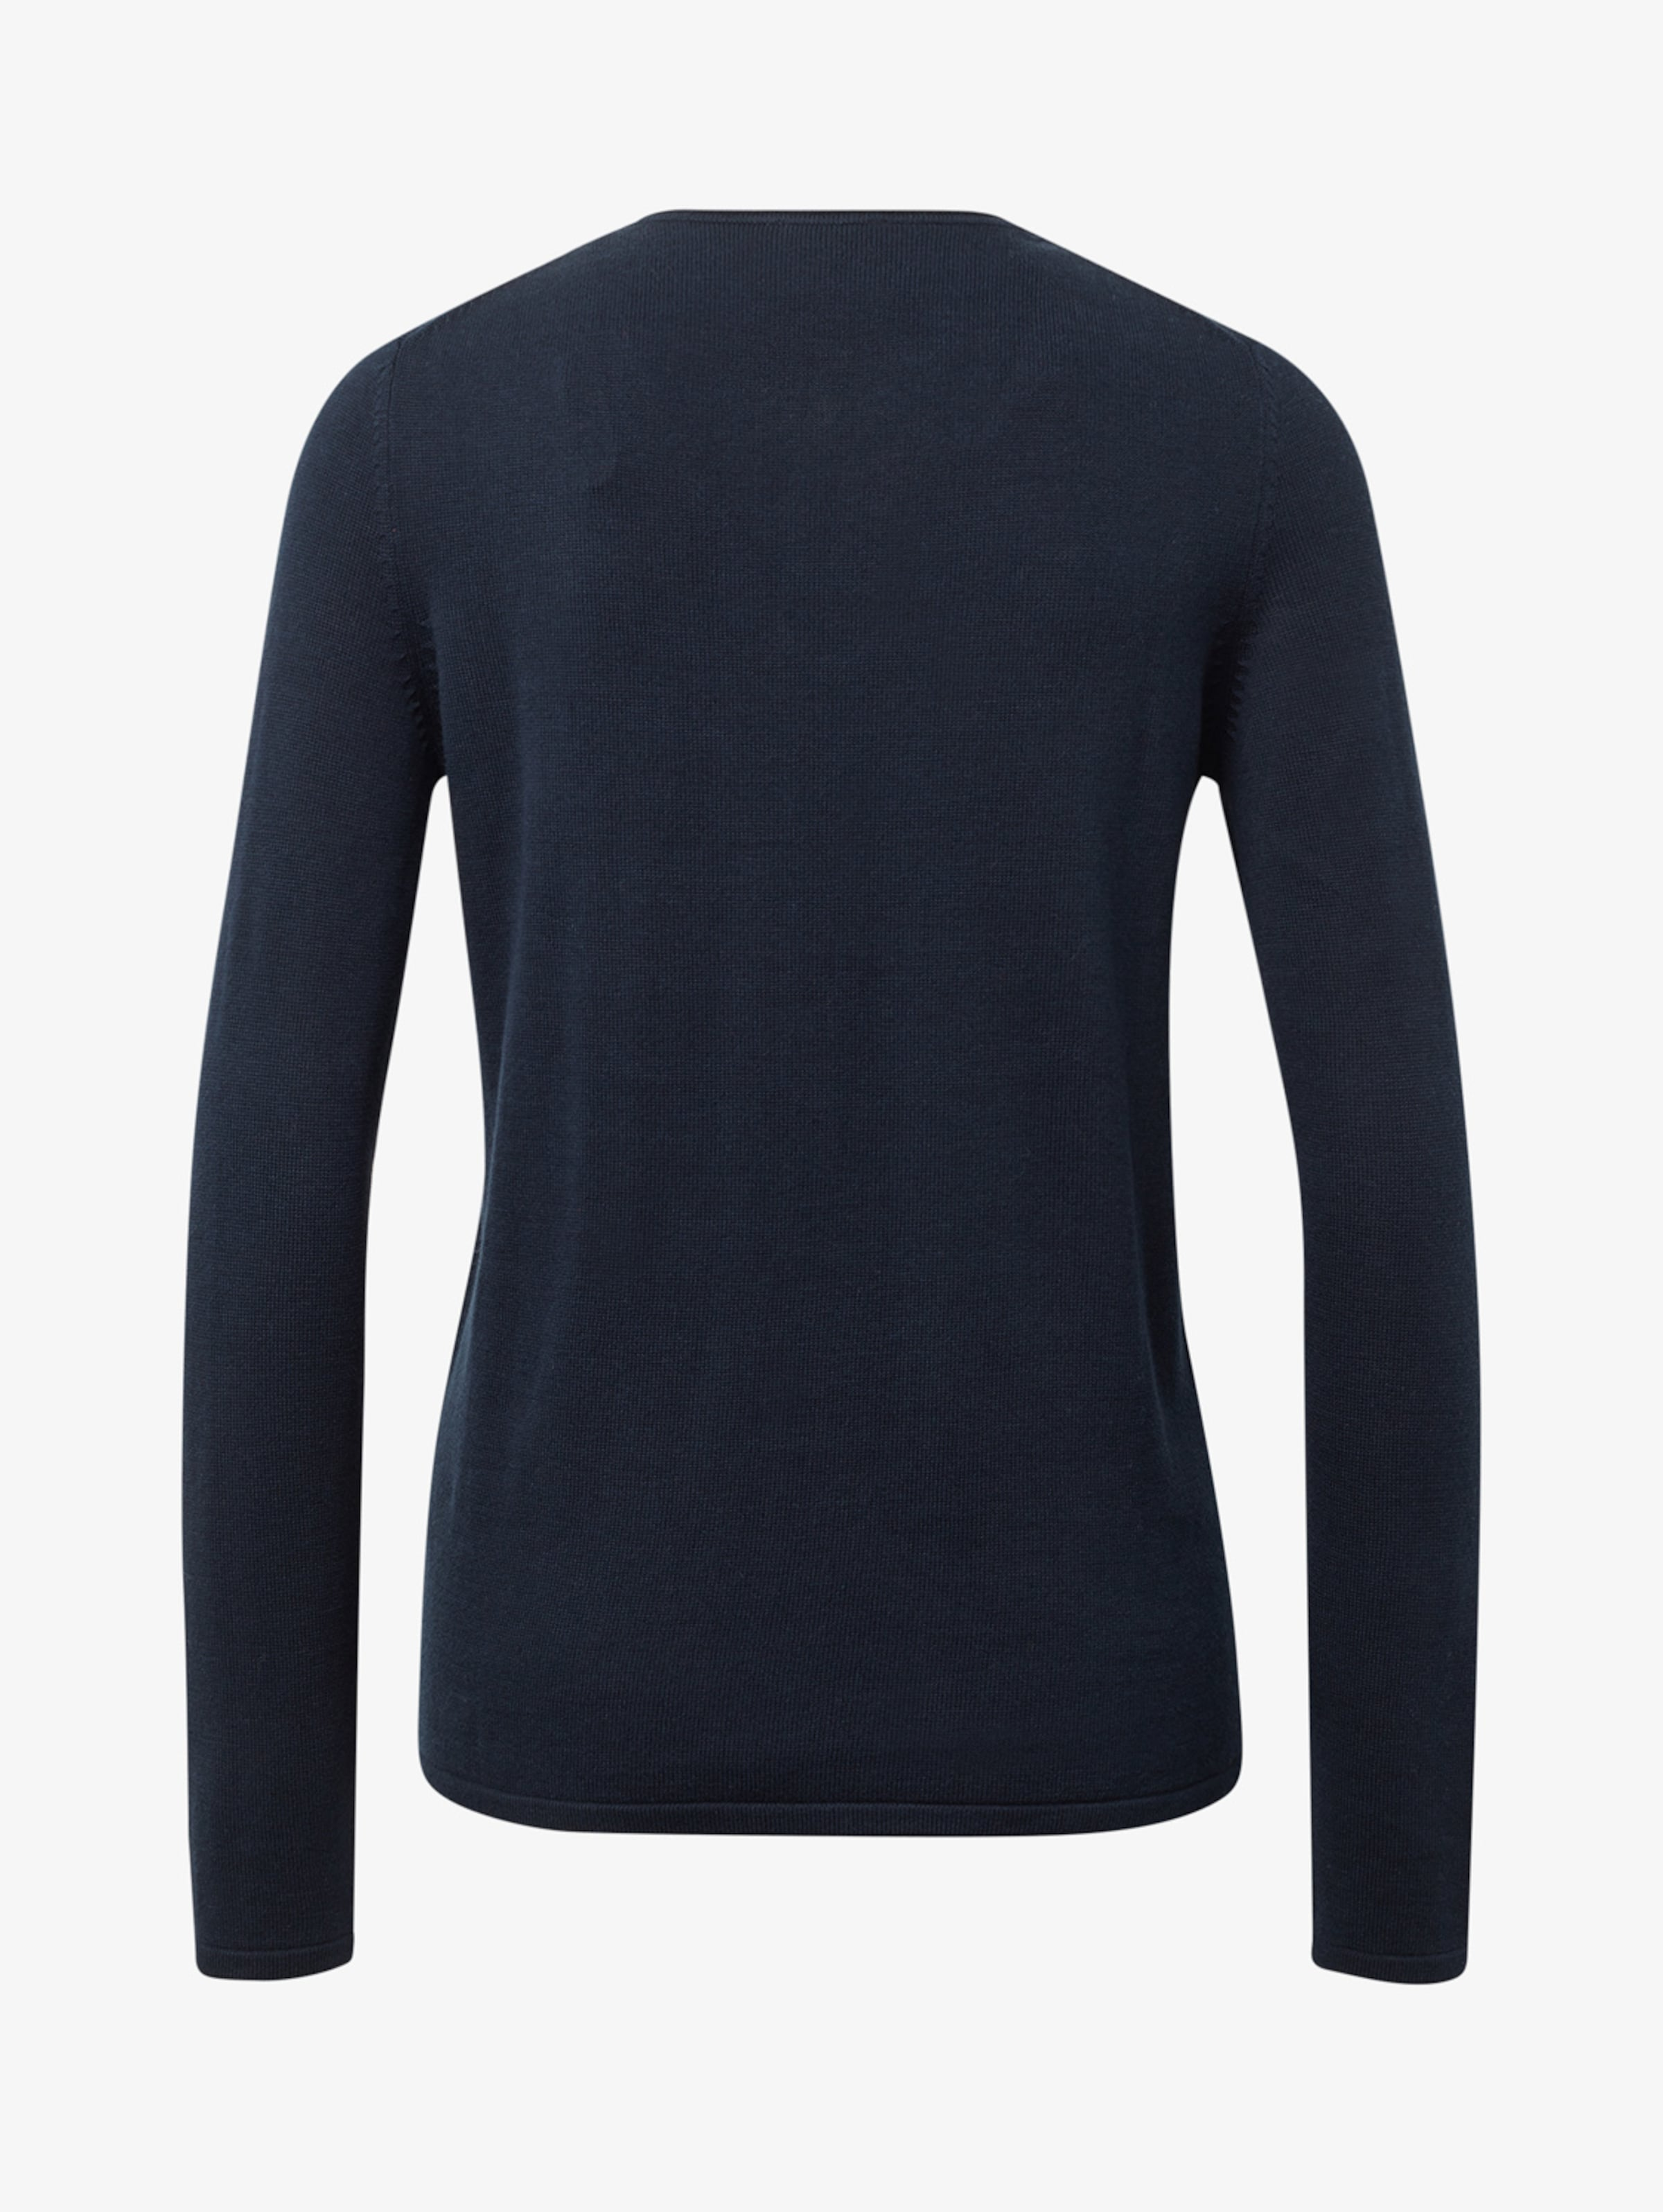 Tom Nachtblau In Tailor Tom Pullover Qrdhts